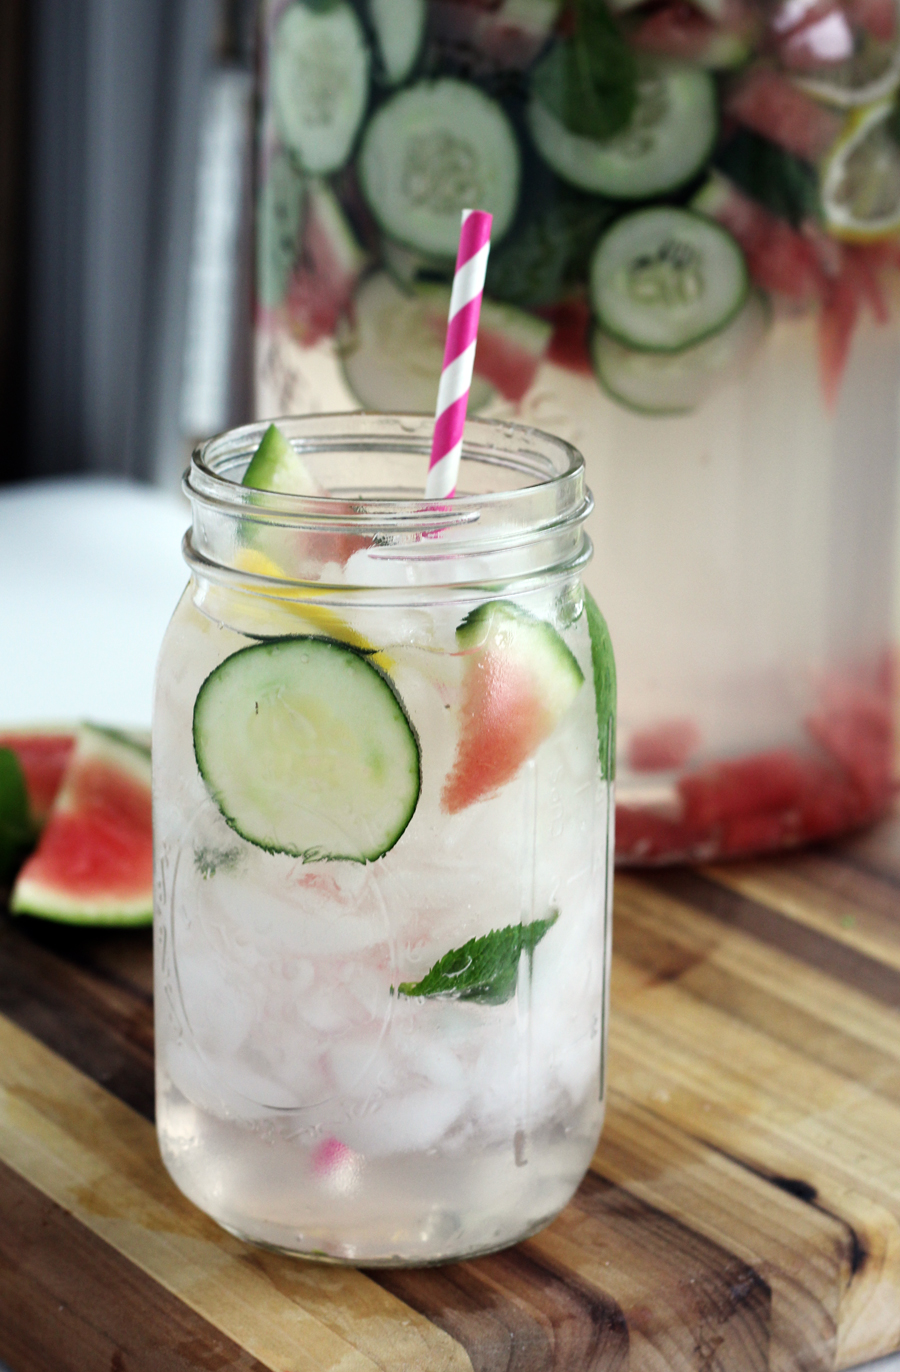 Cucumber Melon Detox Drink